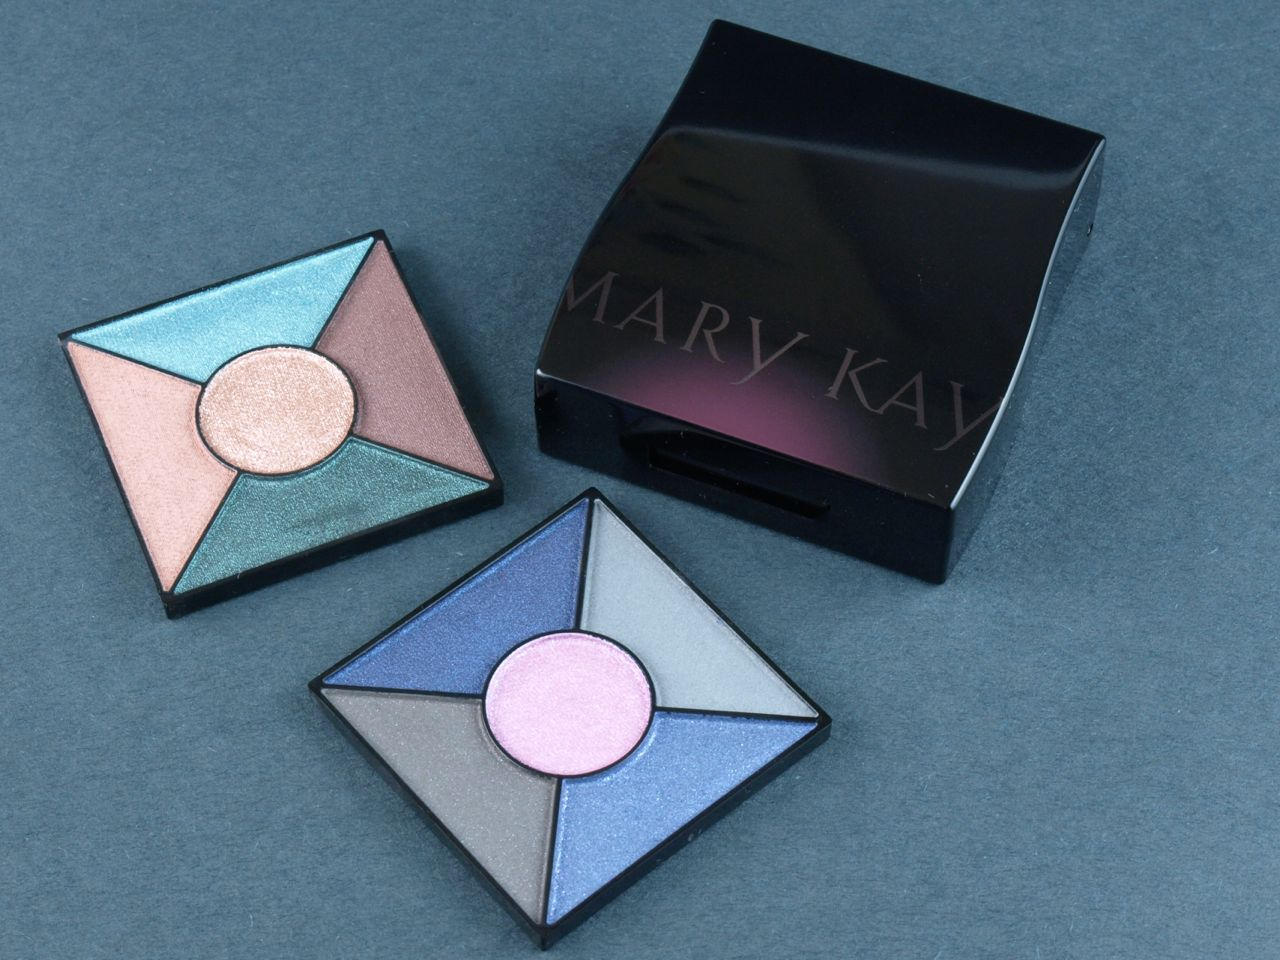 fall 2014 mary kay limited edition midnight jewels collection eye color palette review and swatches